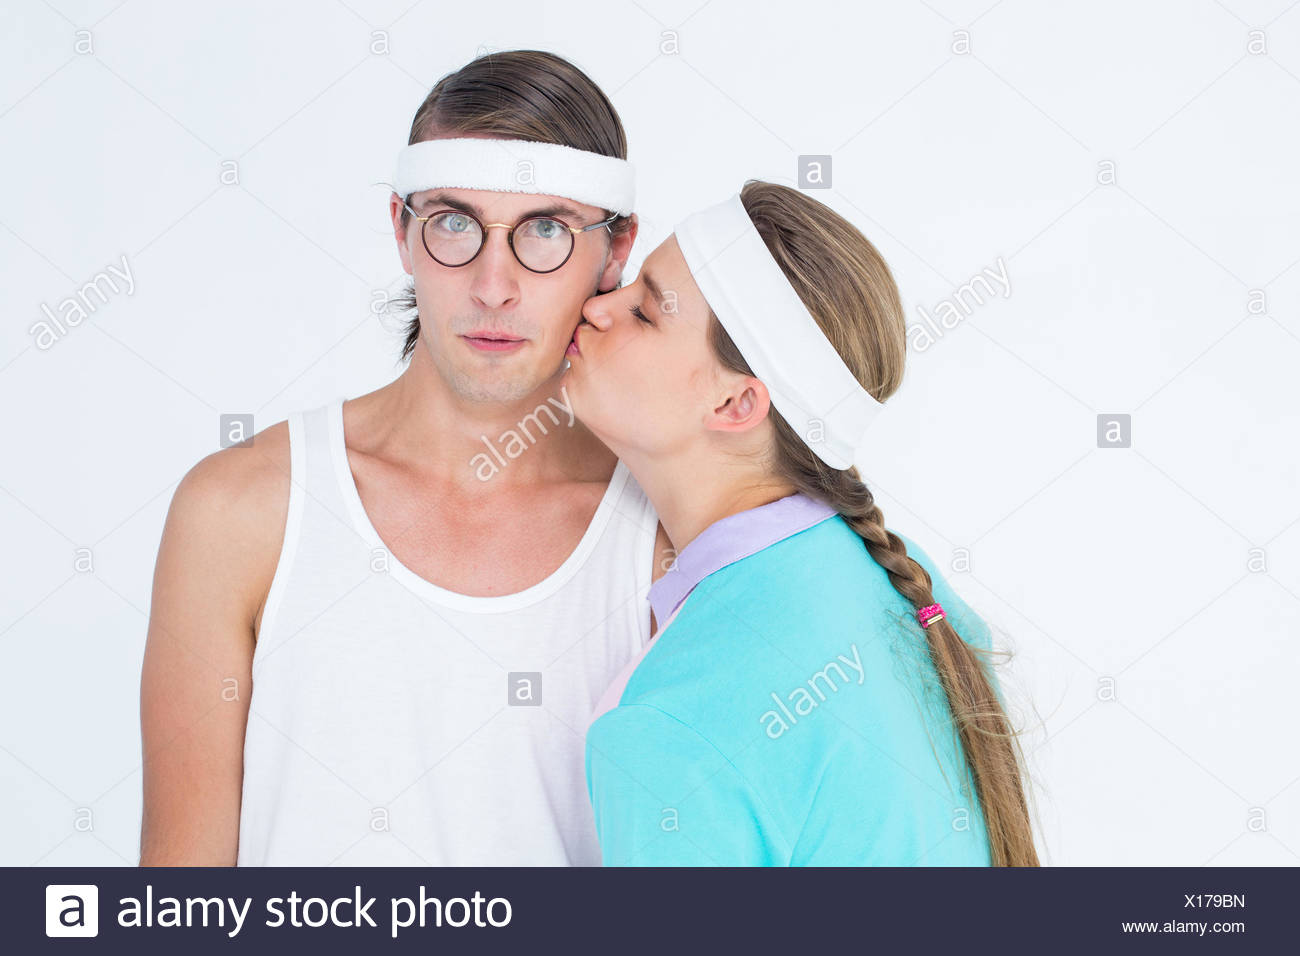 Geeky hipster kissing her boyfriend - Stock Image